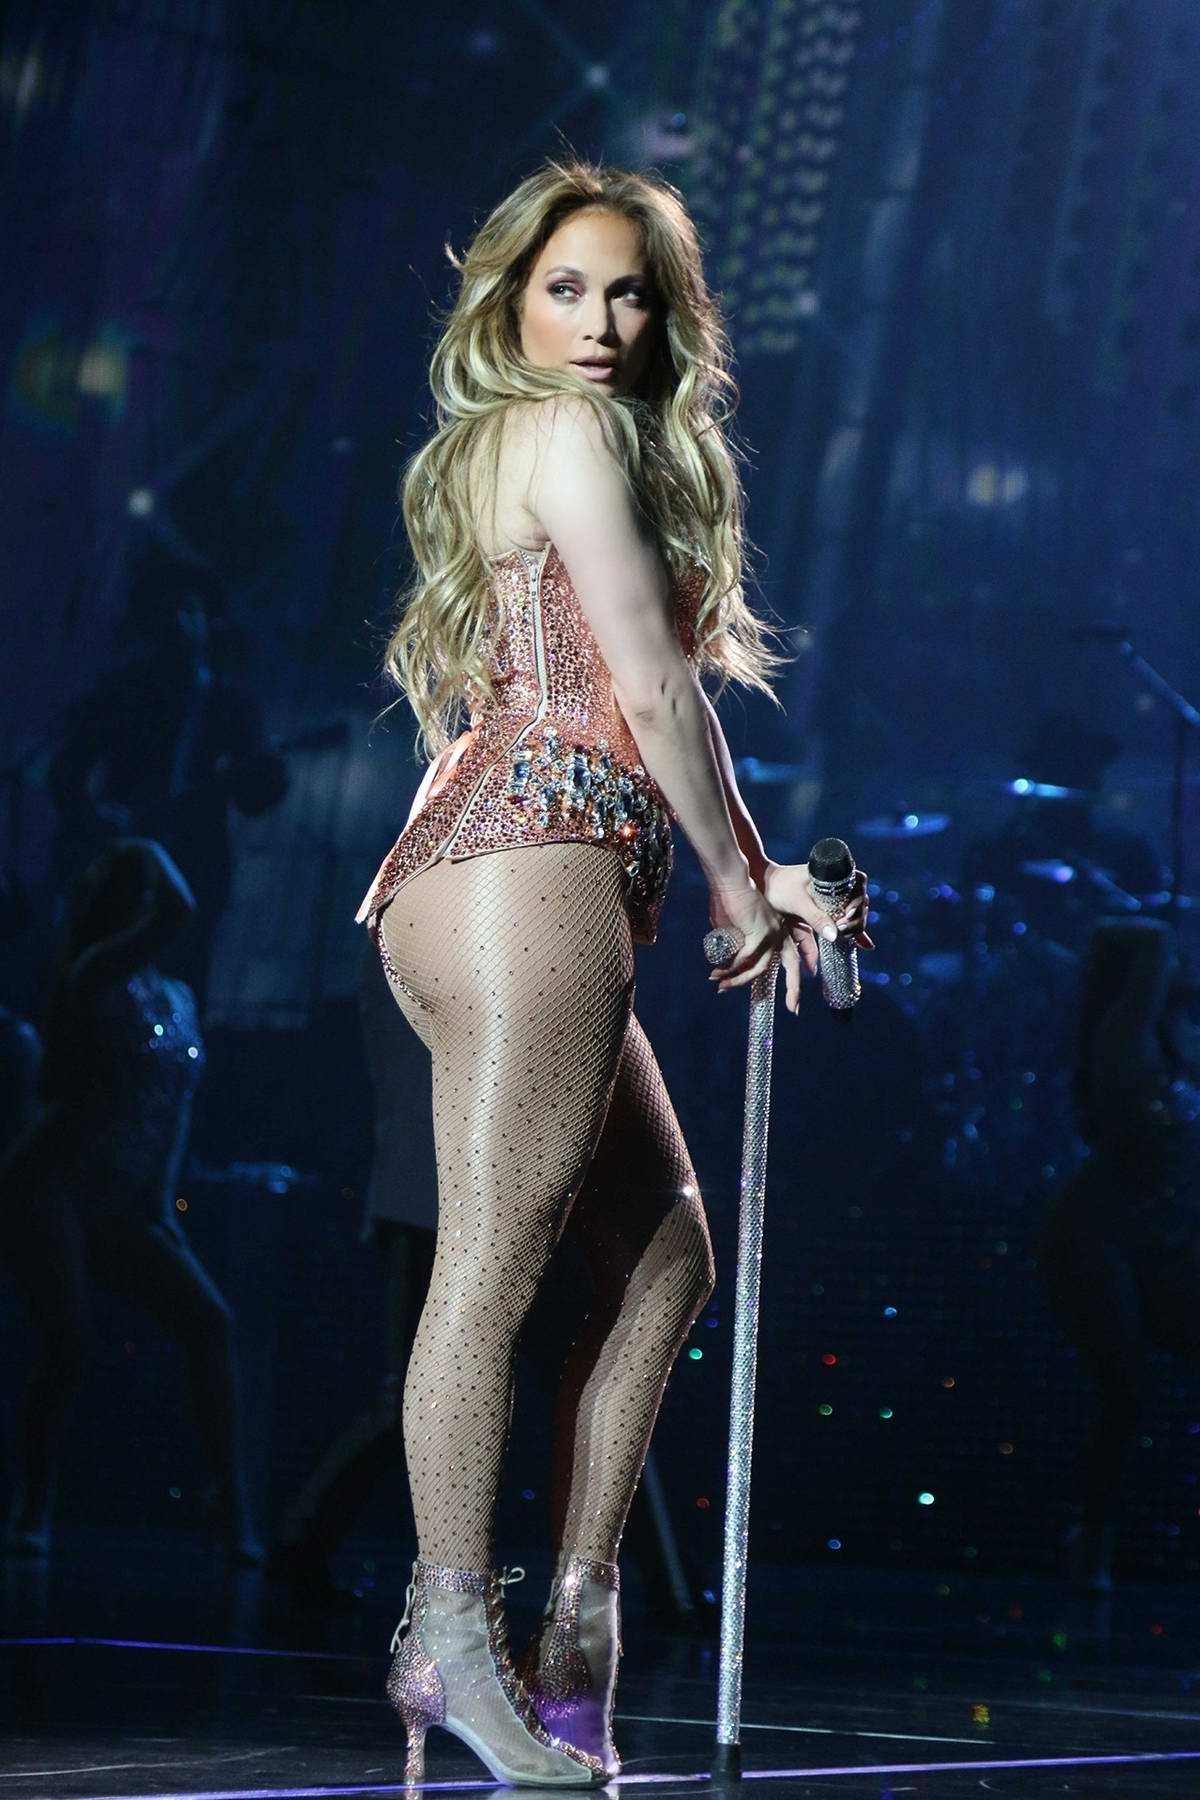 Jennifer Lopez performs live at Planet Hollywood in Las Vegas, Nevada